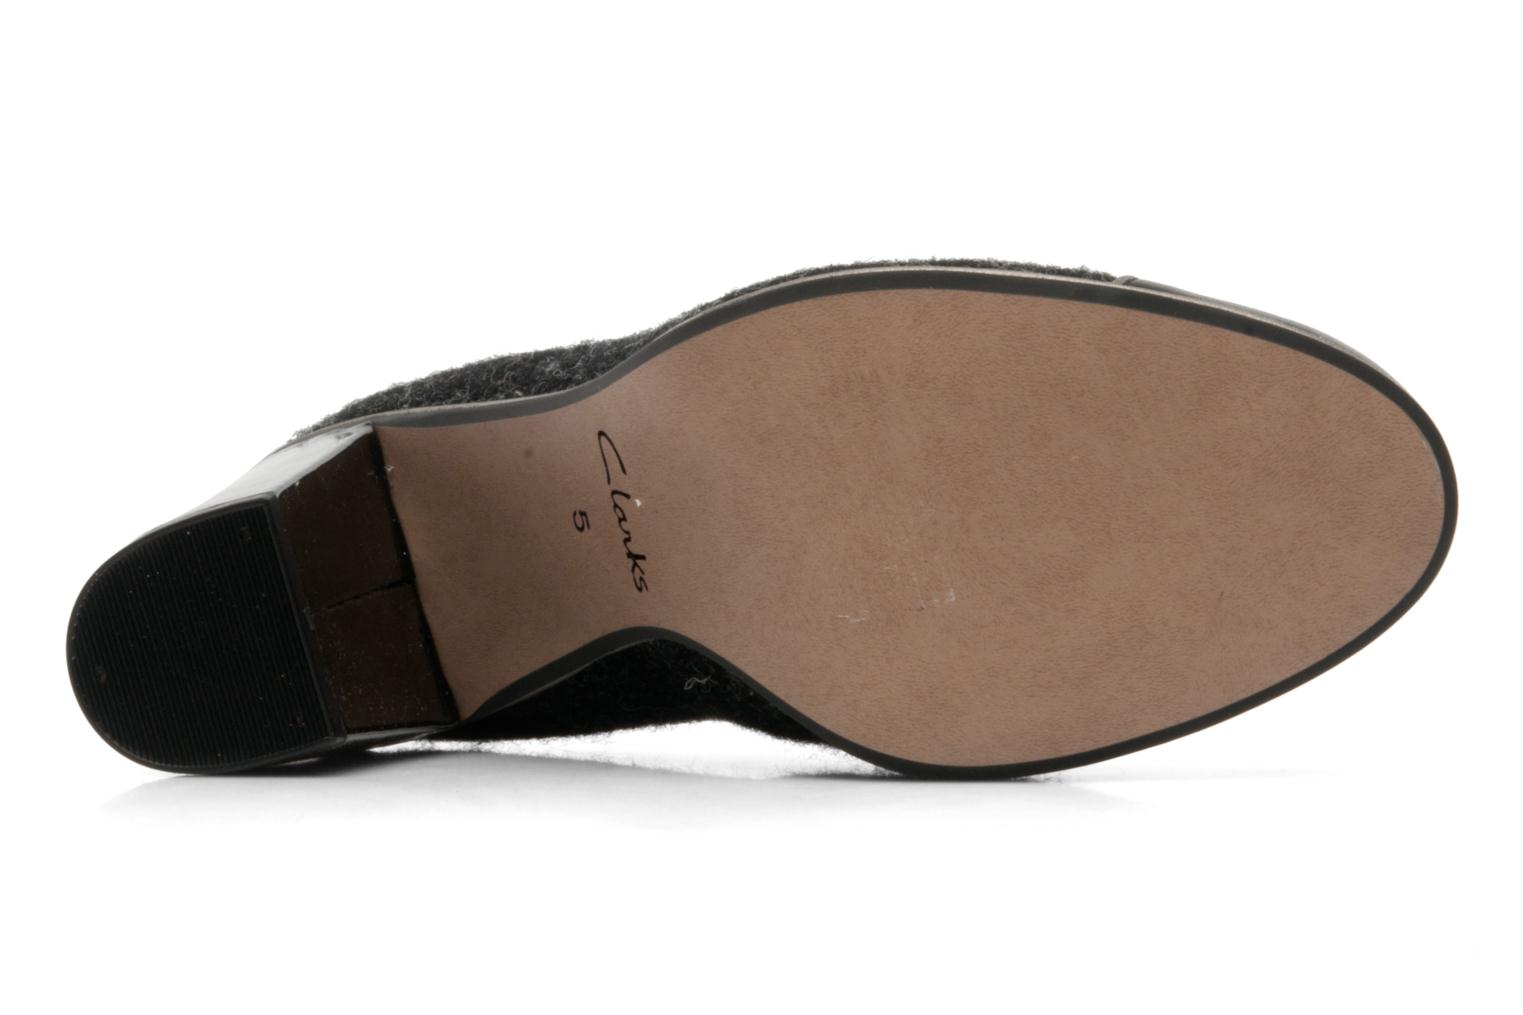 Cornish Ice by Clarks (Negro): entrega gratuita de tus Zapatos de tacón Cornish Ice Clarks en Sarenza